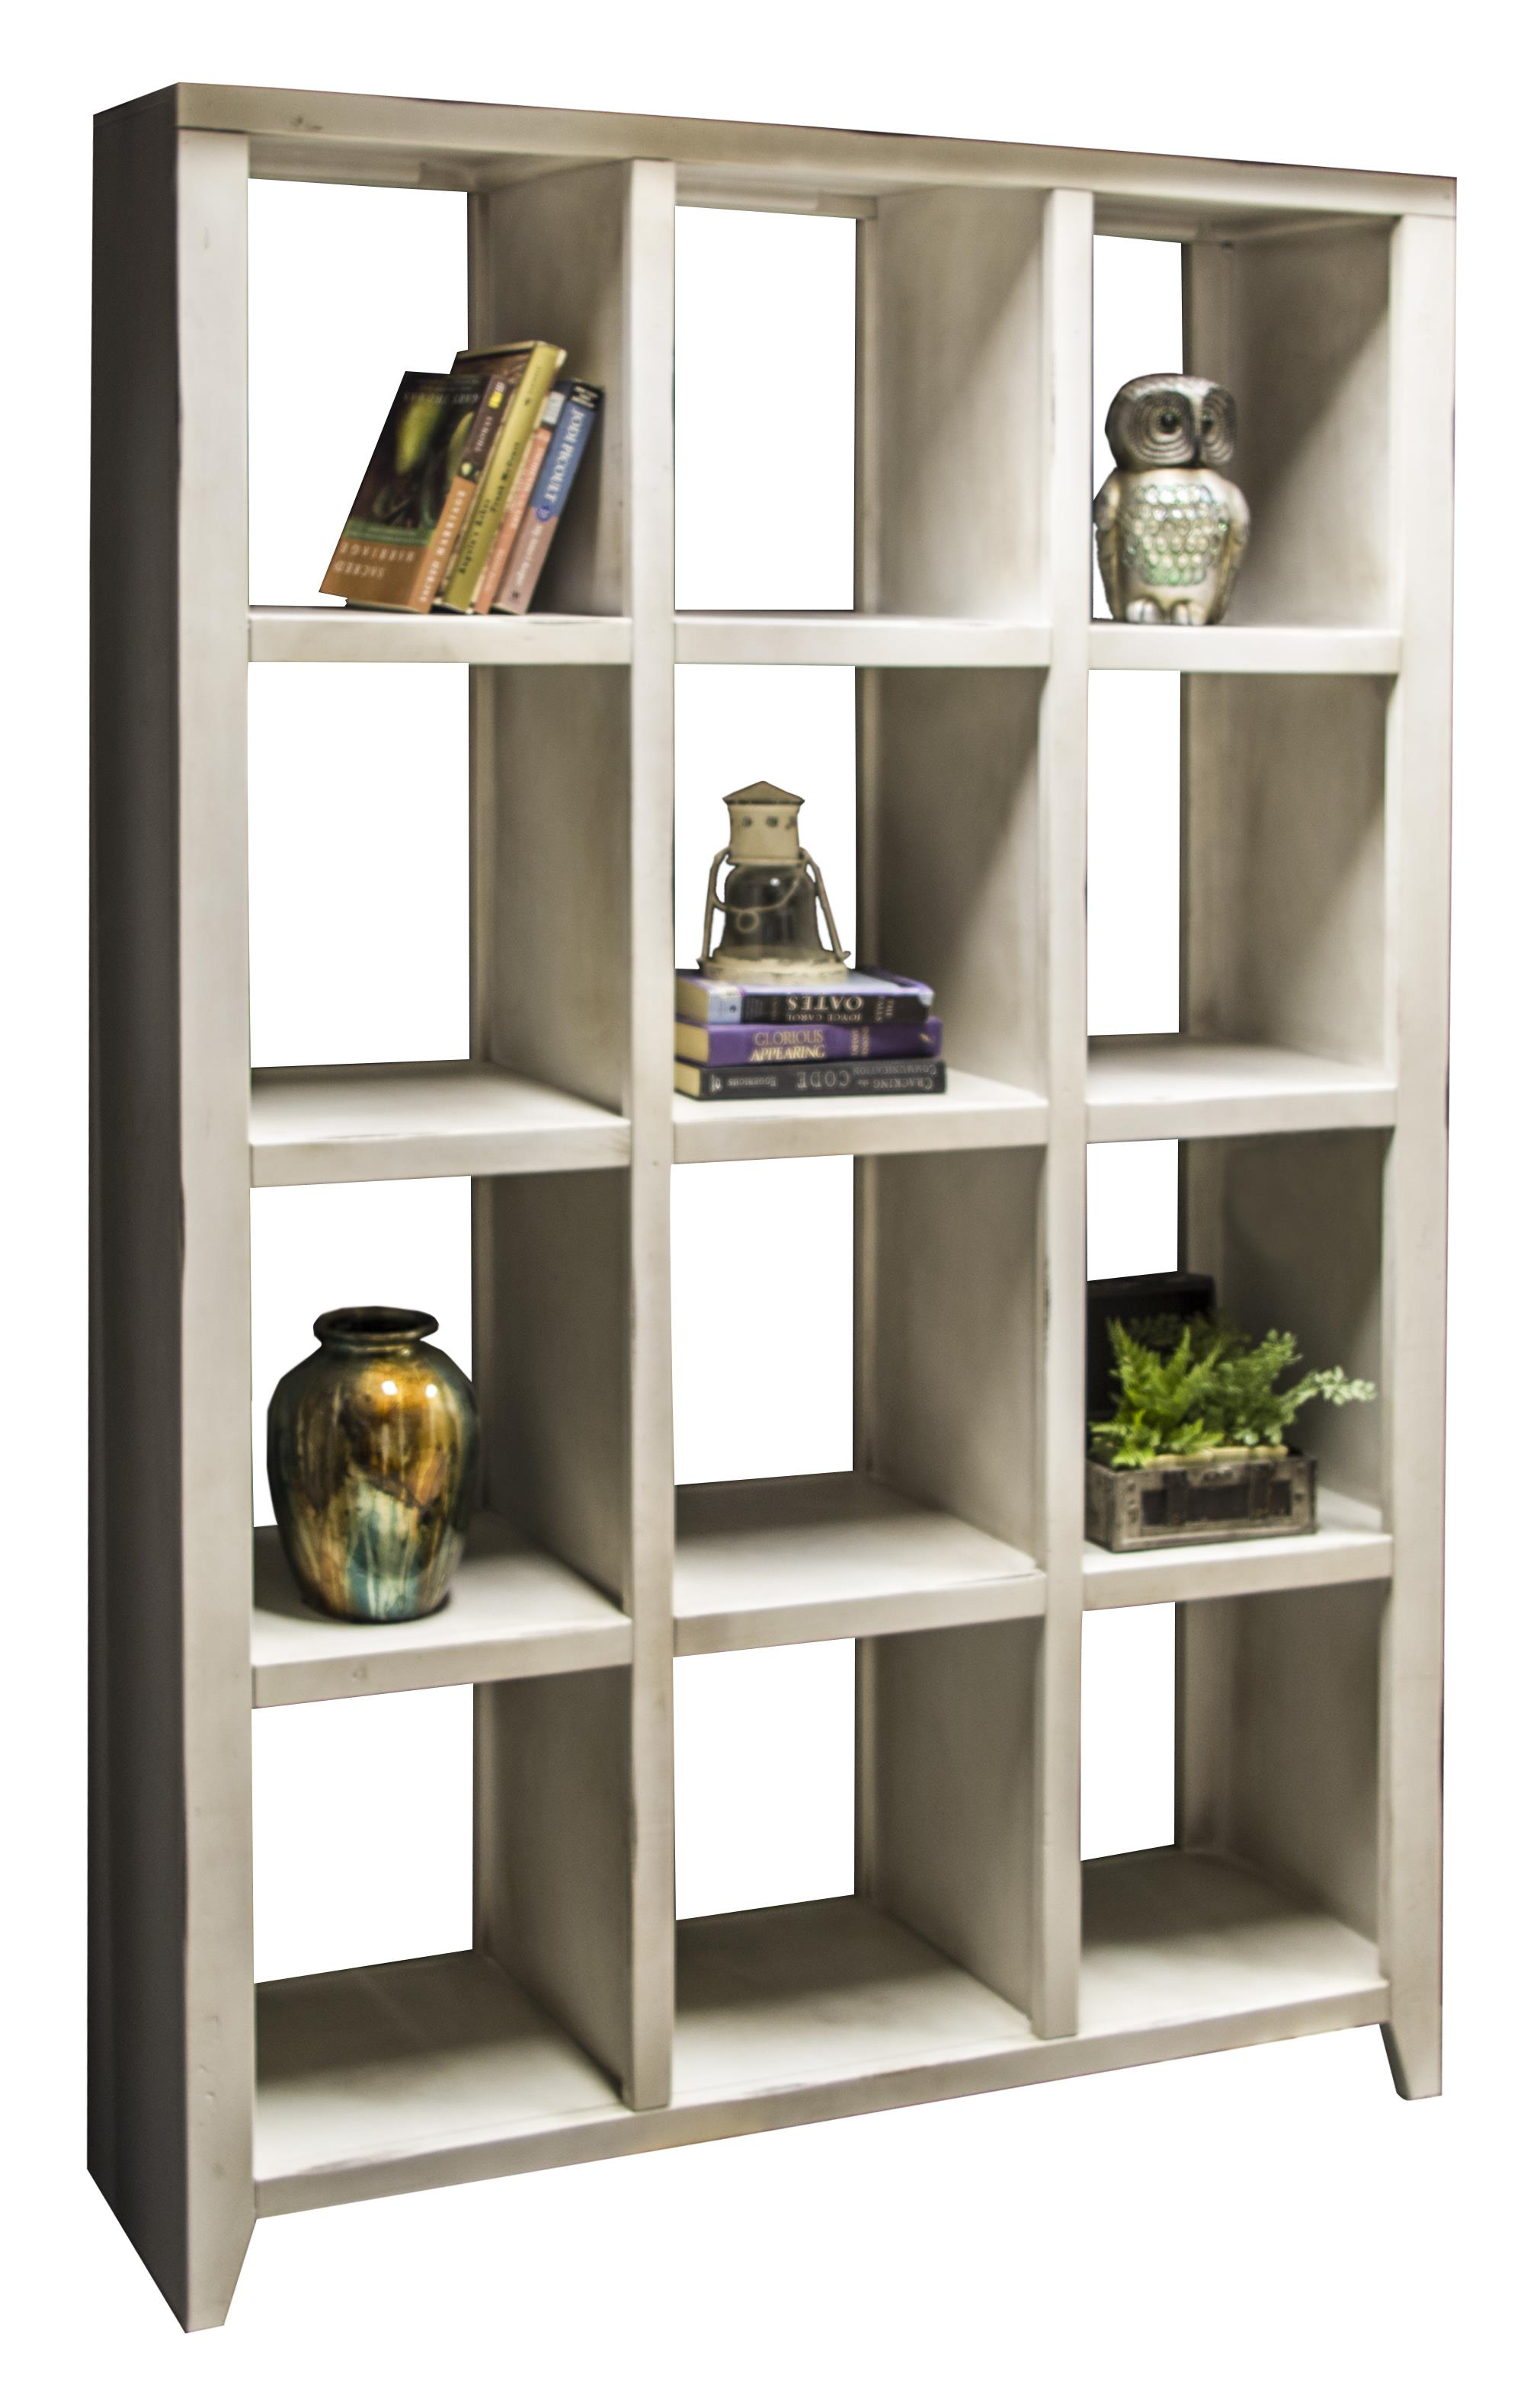 Legends Furniture Calistoga Collection Calistoga Room Divider - Item Number: CA6404-RWT